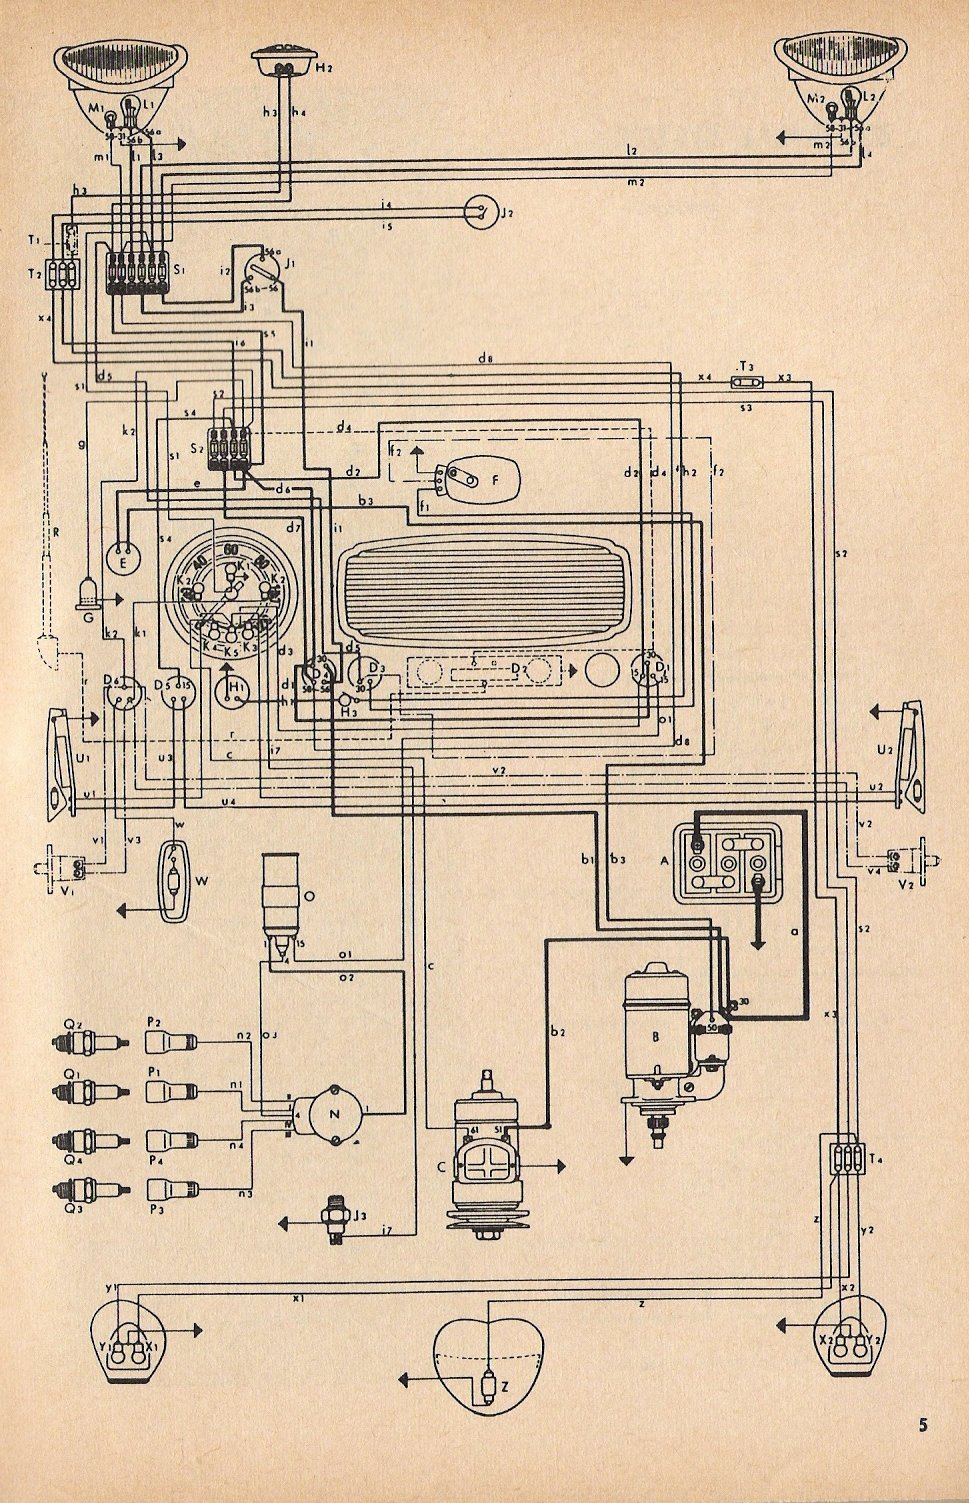 Type 1 Wiring Diagrams 1976 Chevelle Diagram